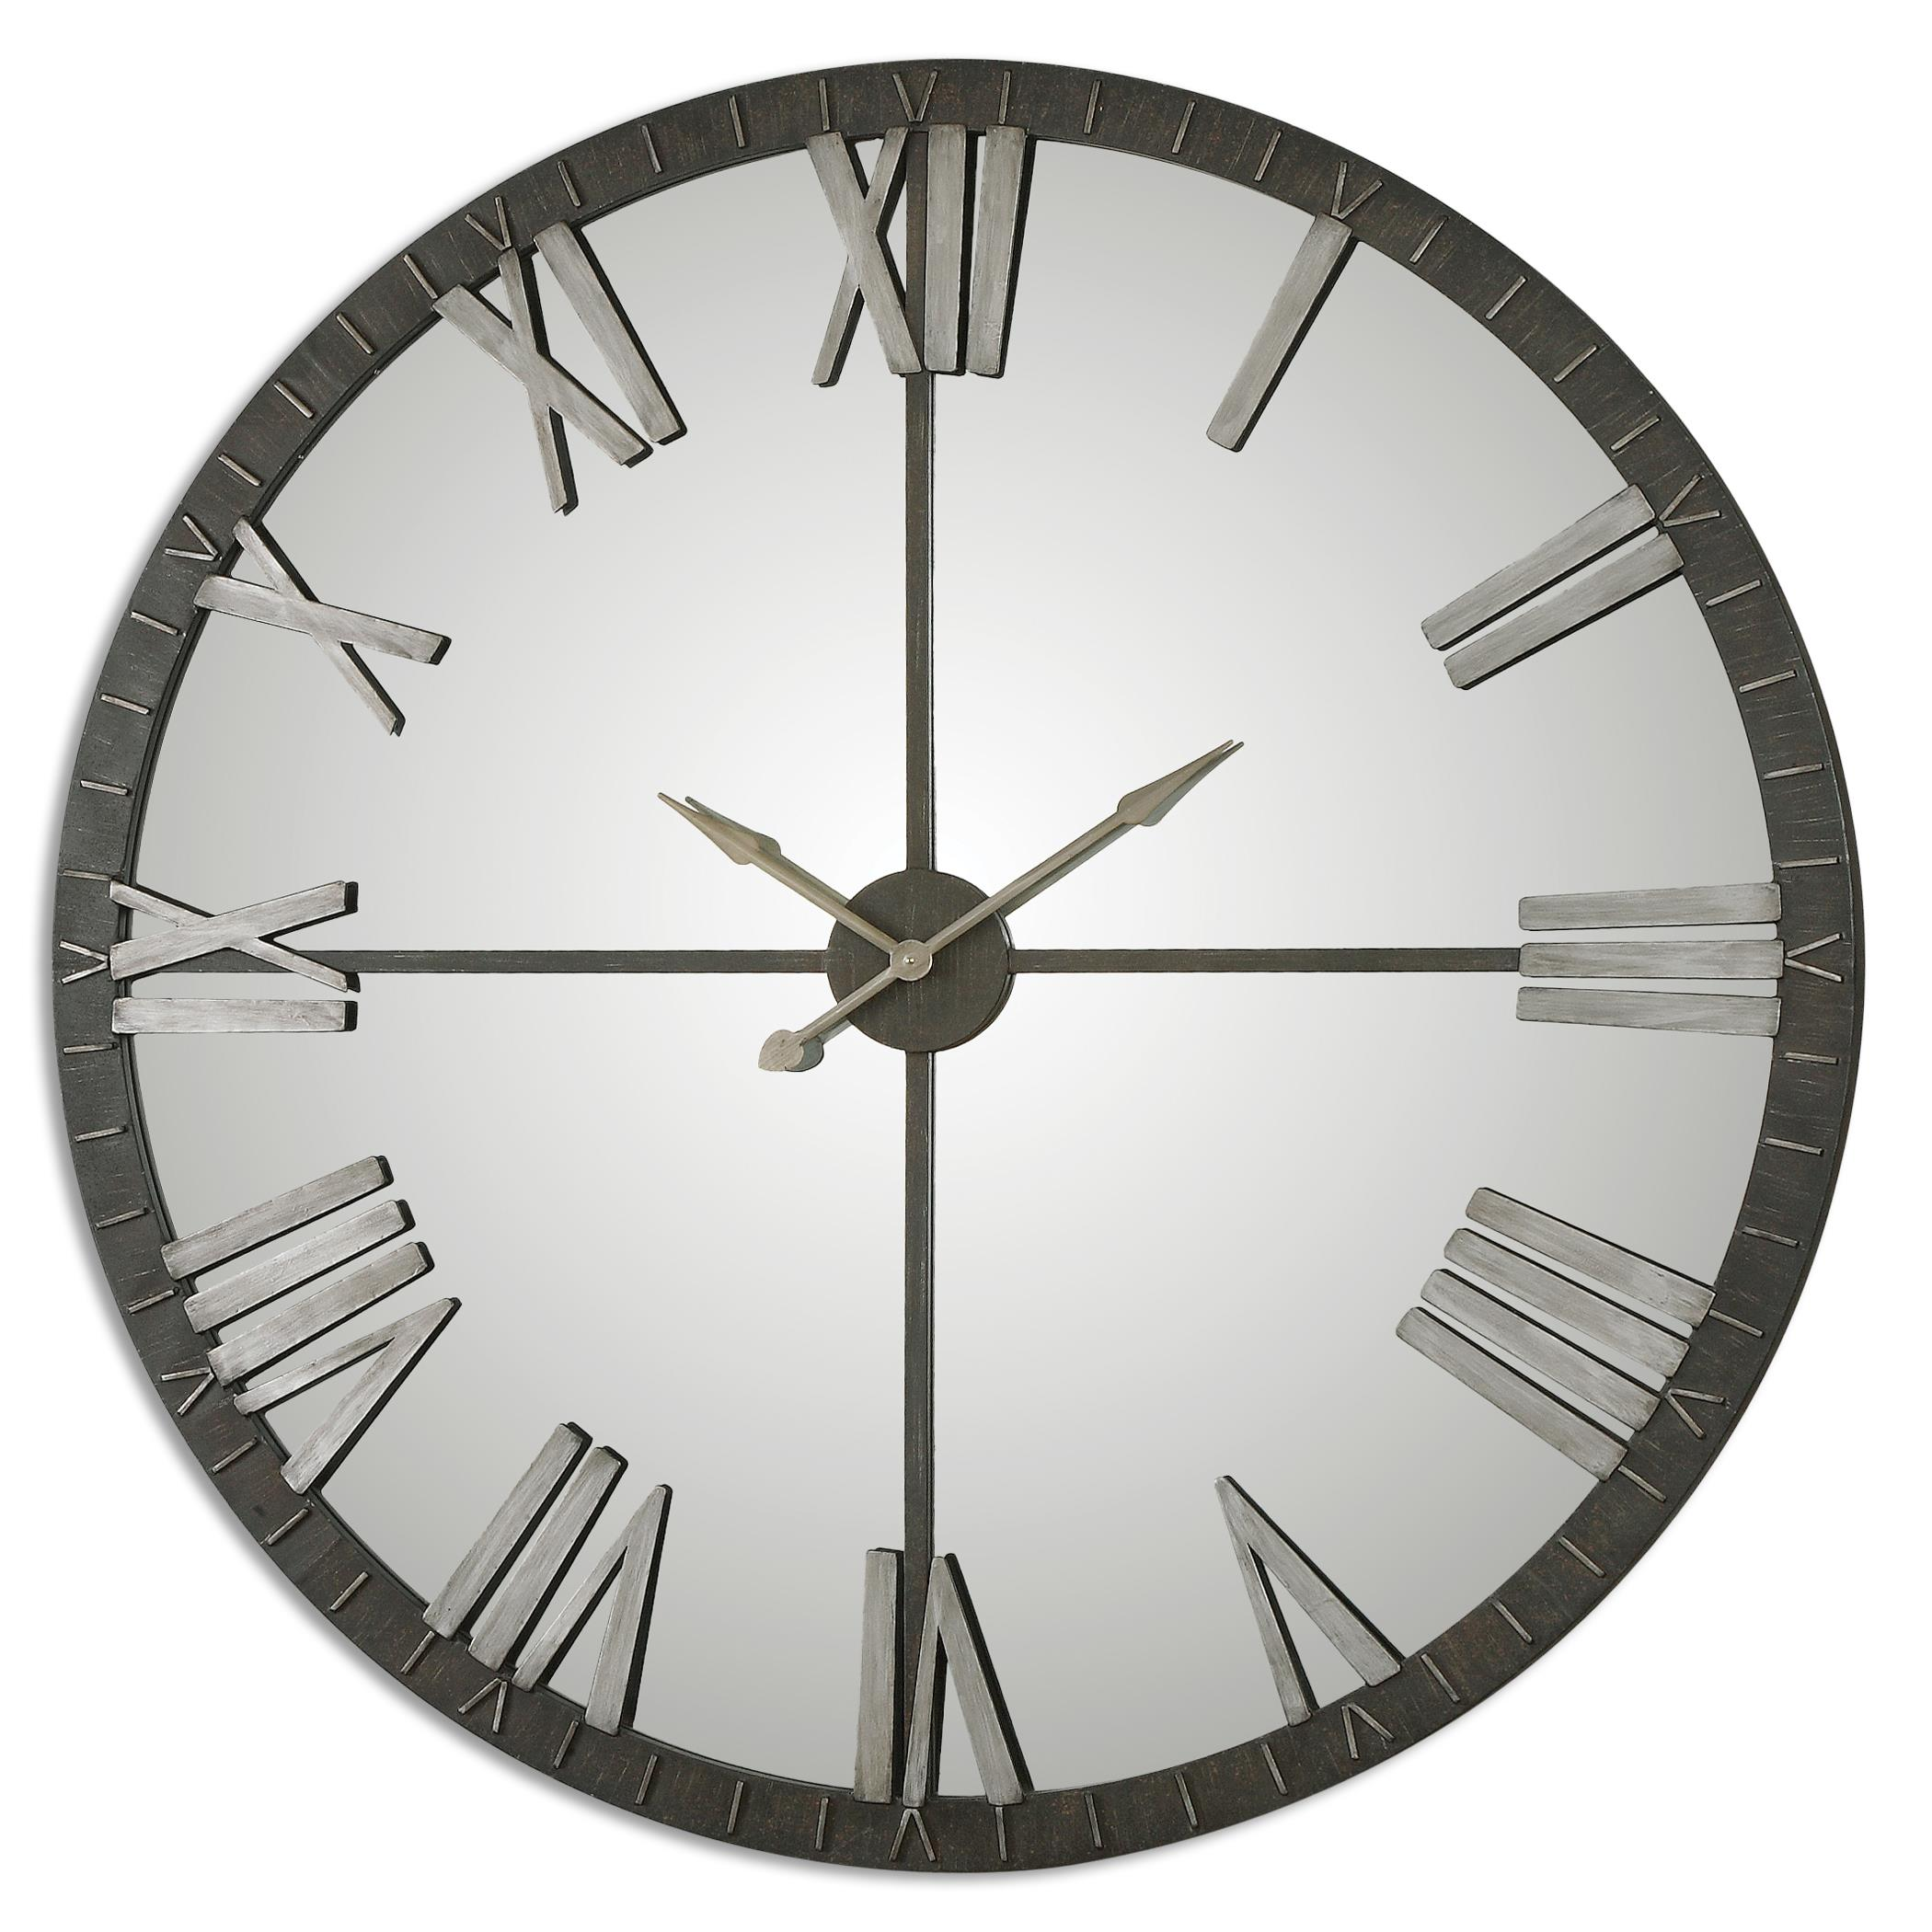 Uttermost Clocks Amelie Large Bronze Wall Clock - Item Number: 06419